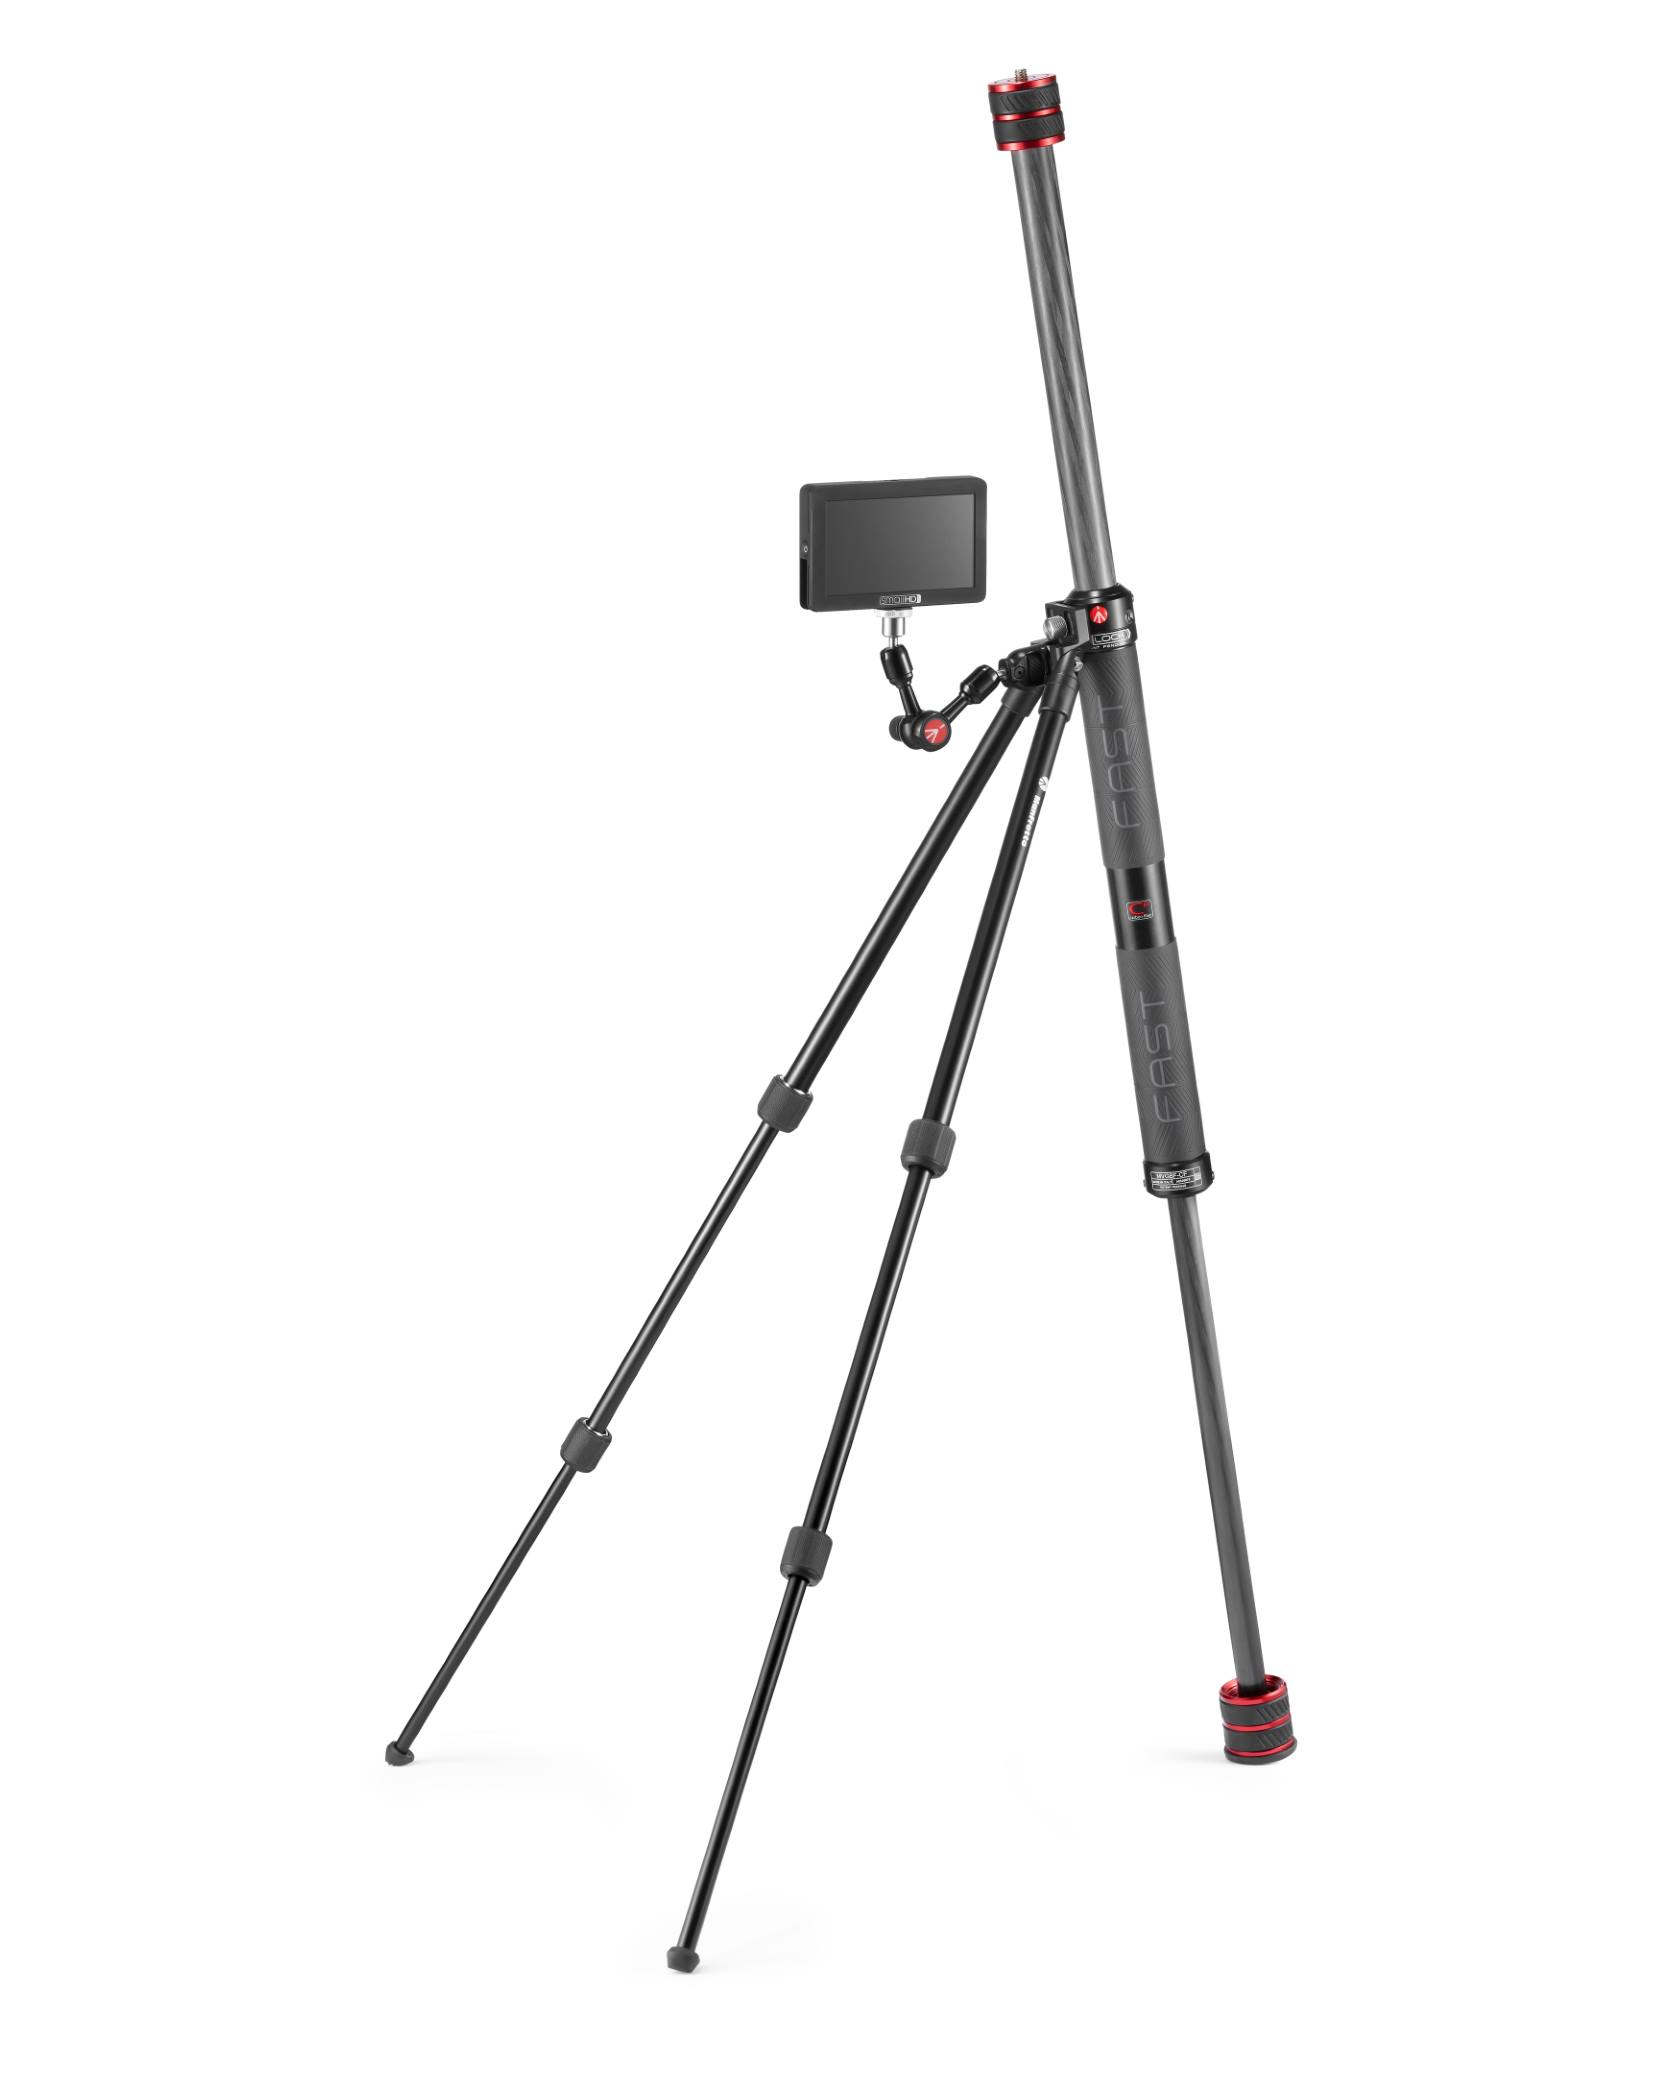 The Gimboom with the accessory attachment and the new legs